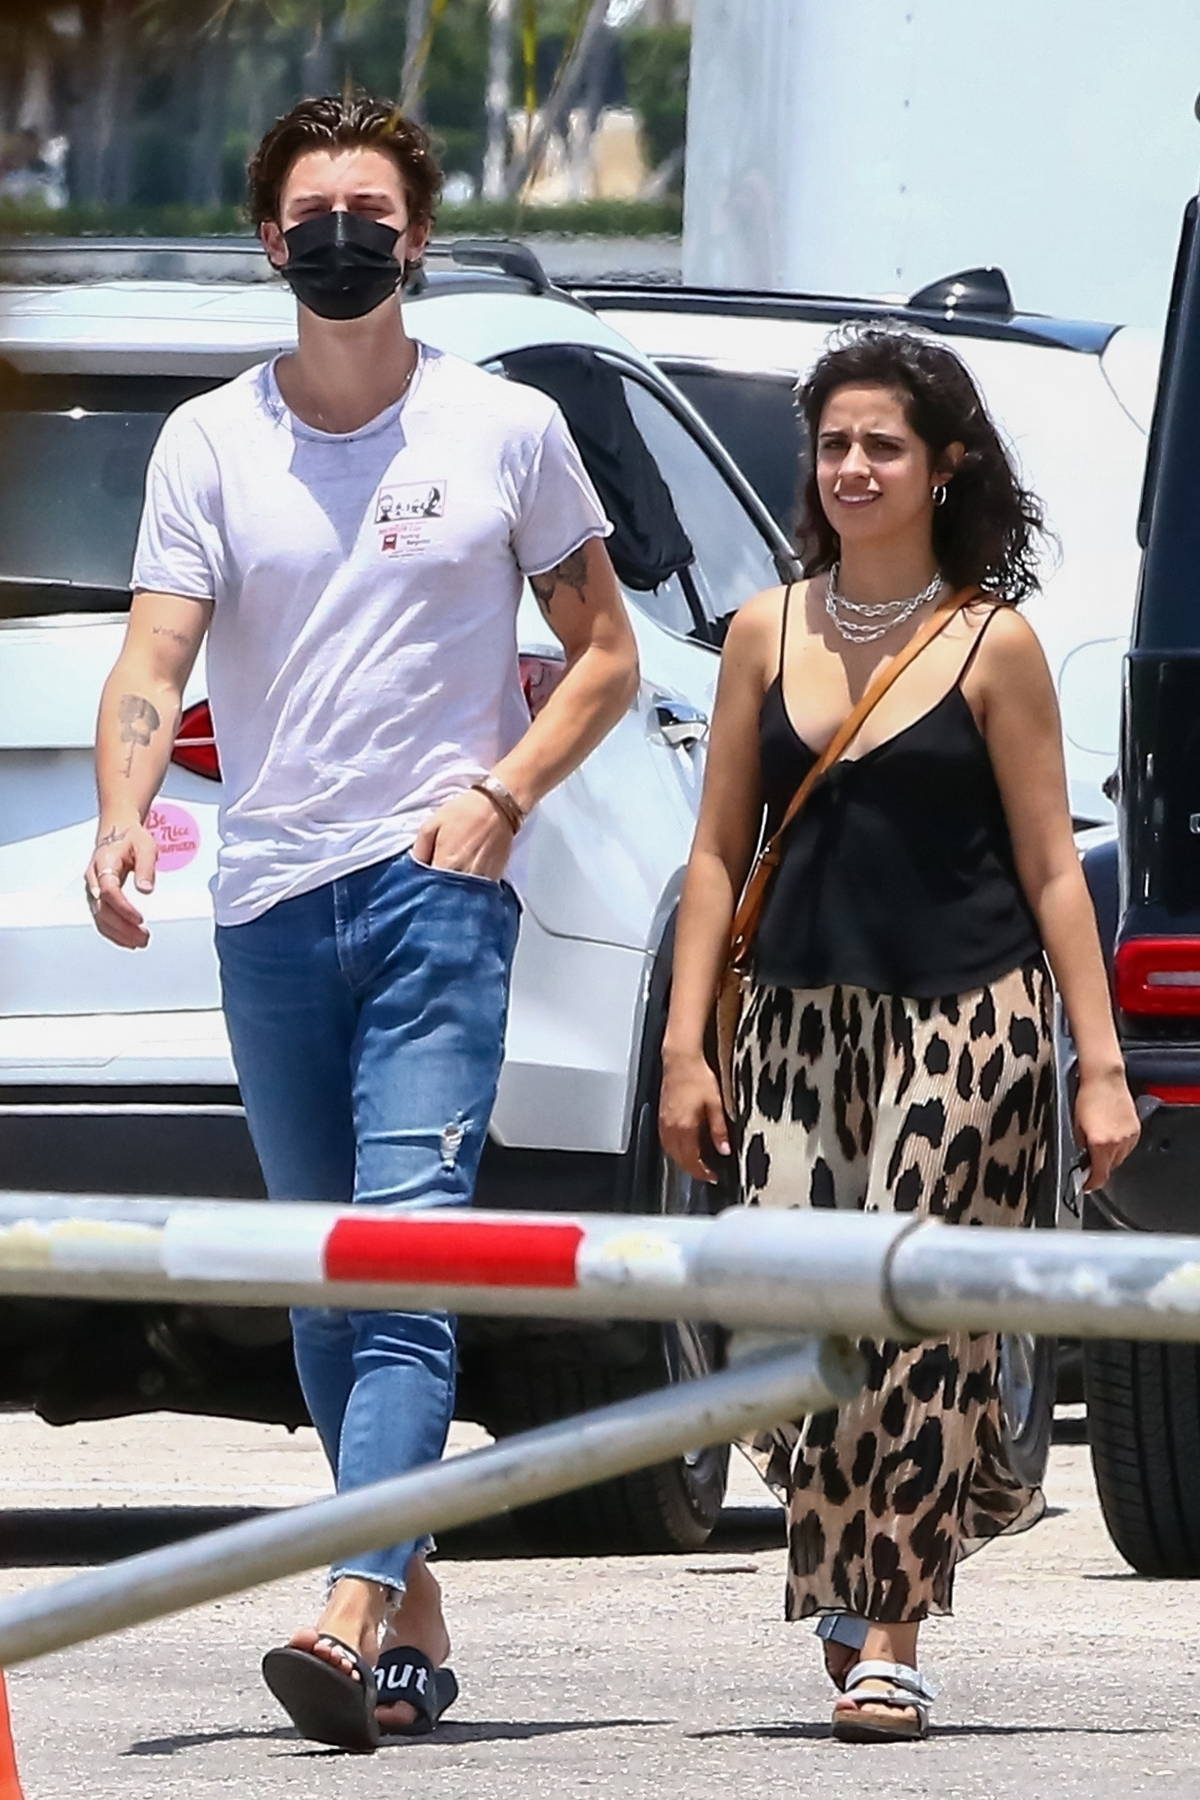 Camila Cabello and Shawn Mendes walk through a parking lot to have lunch together in Miami, Florida